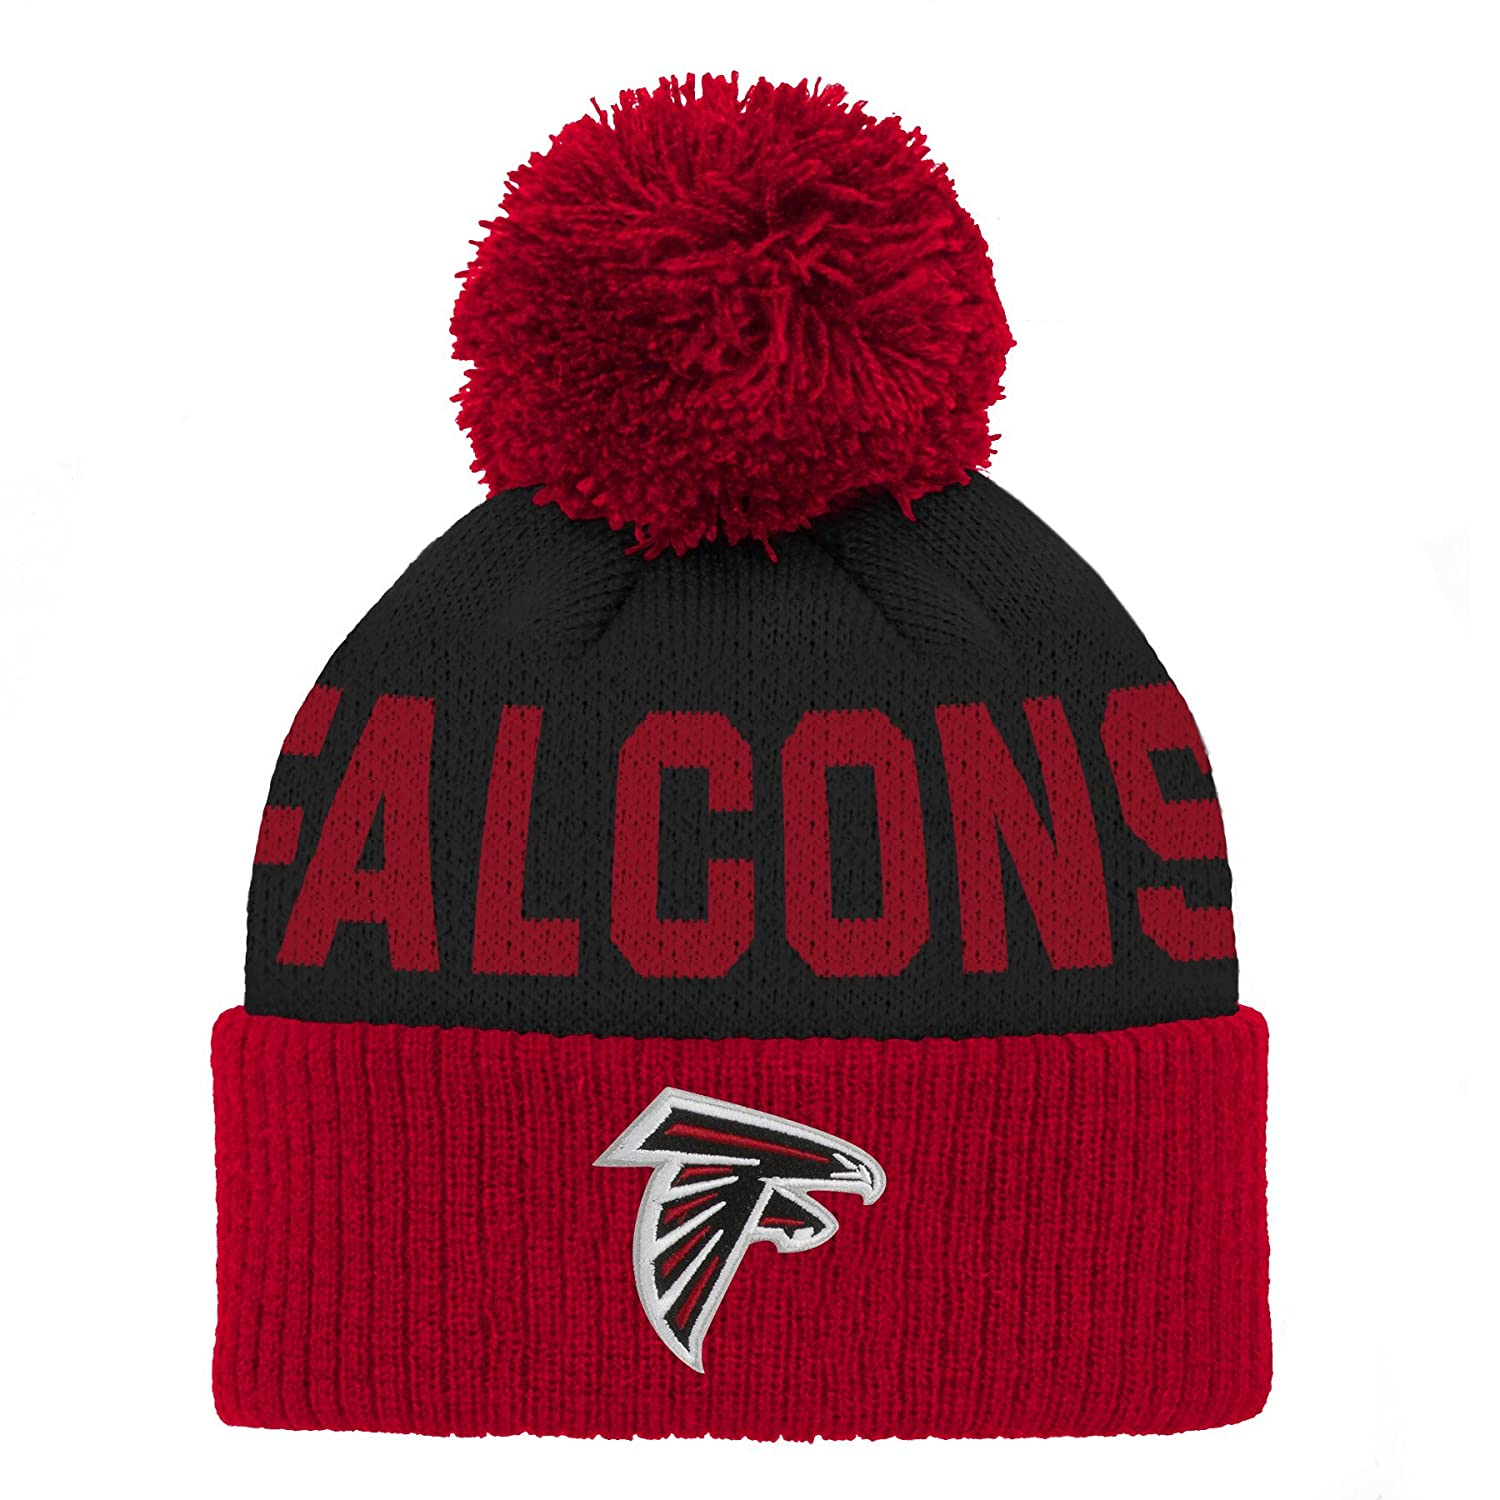 NFL Atlanta Falcons Infant Outerstuff Jacquard Cuffed Knit Hat With Pom Team Color Infant One Size